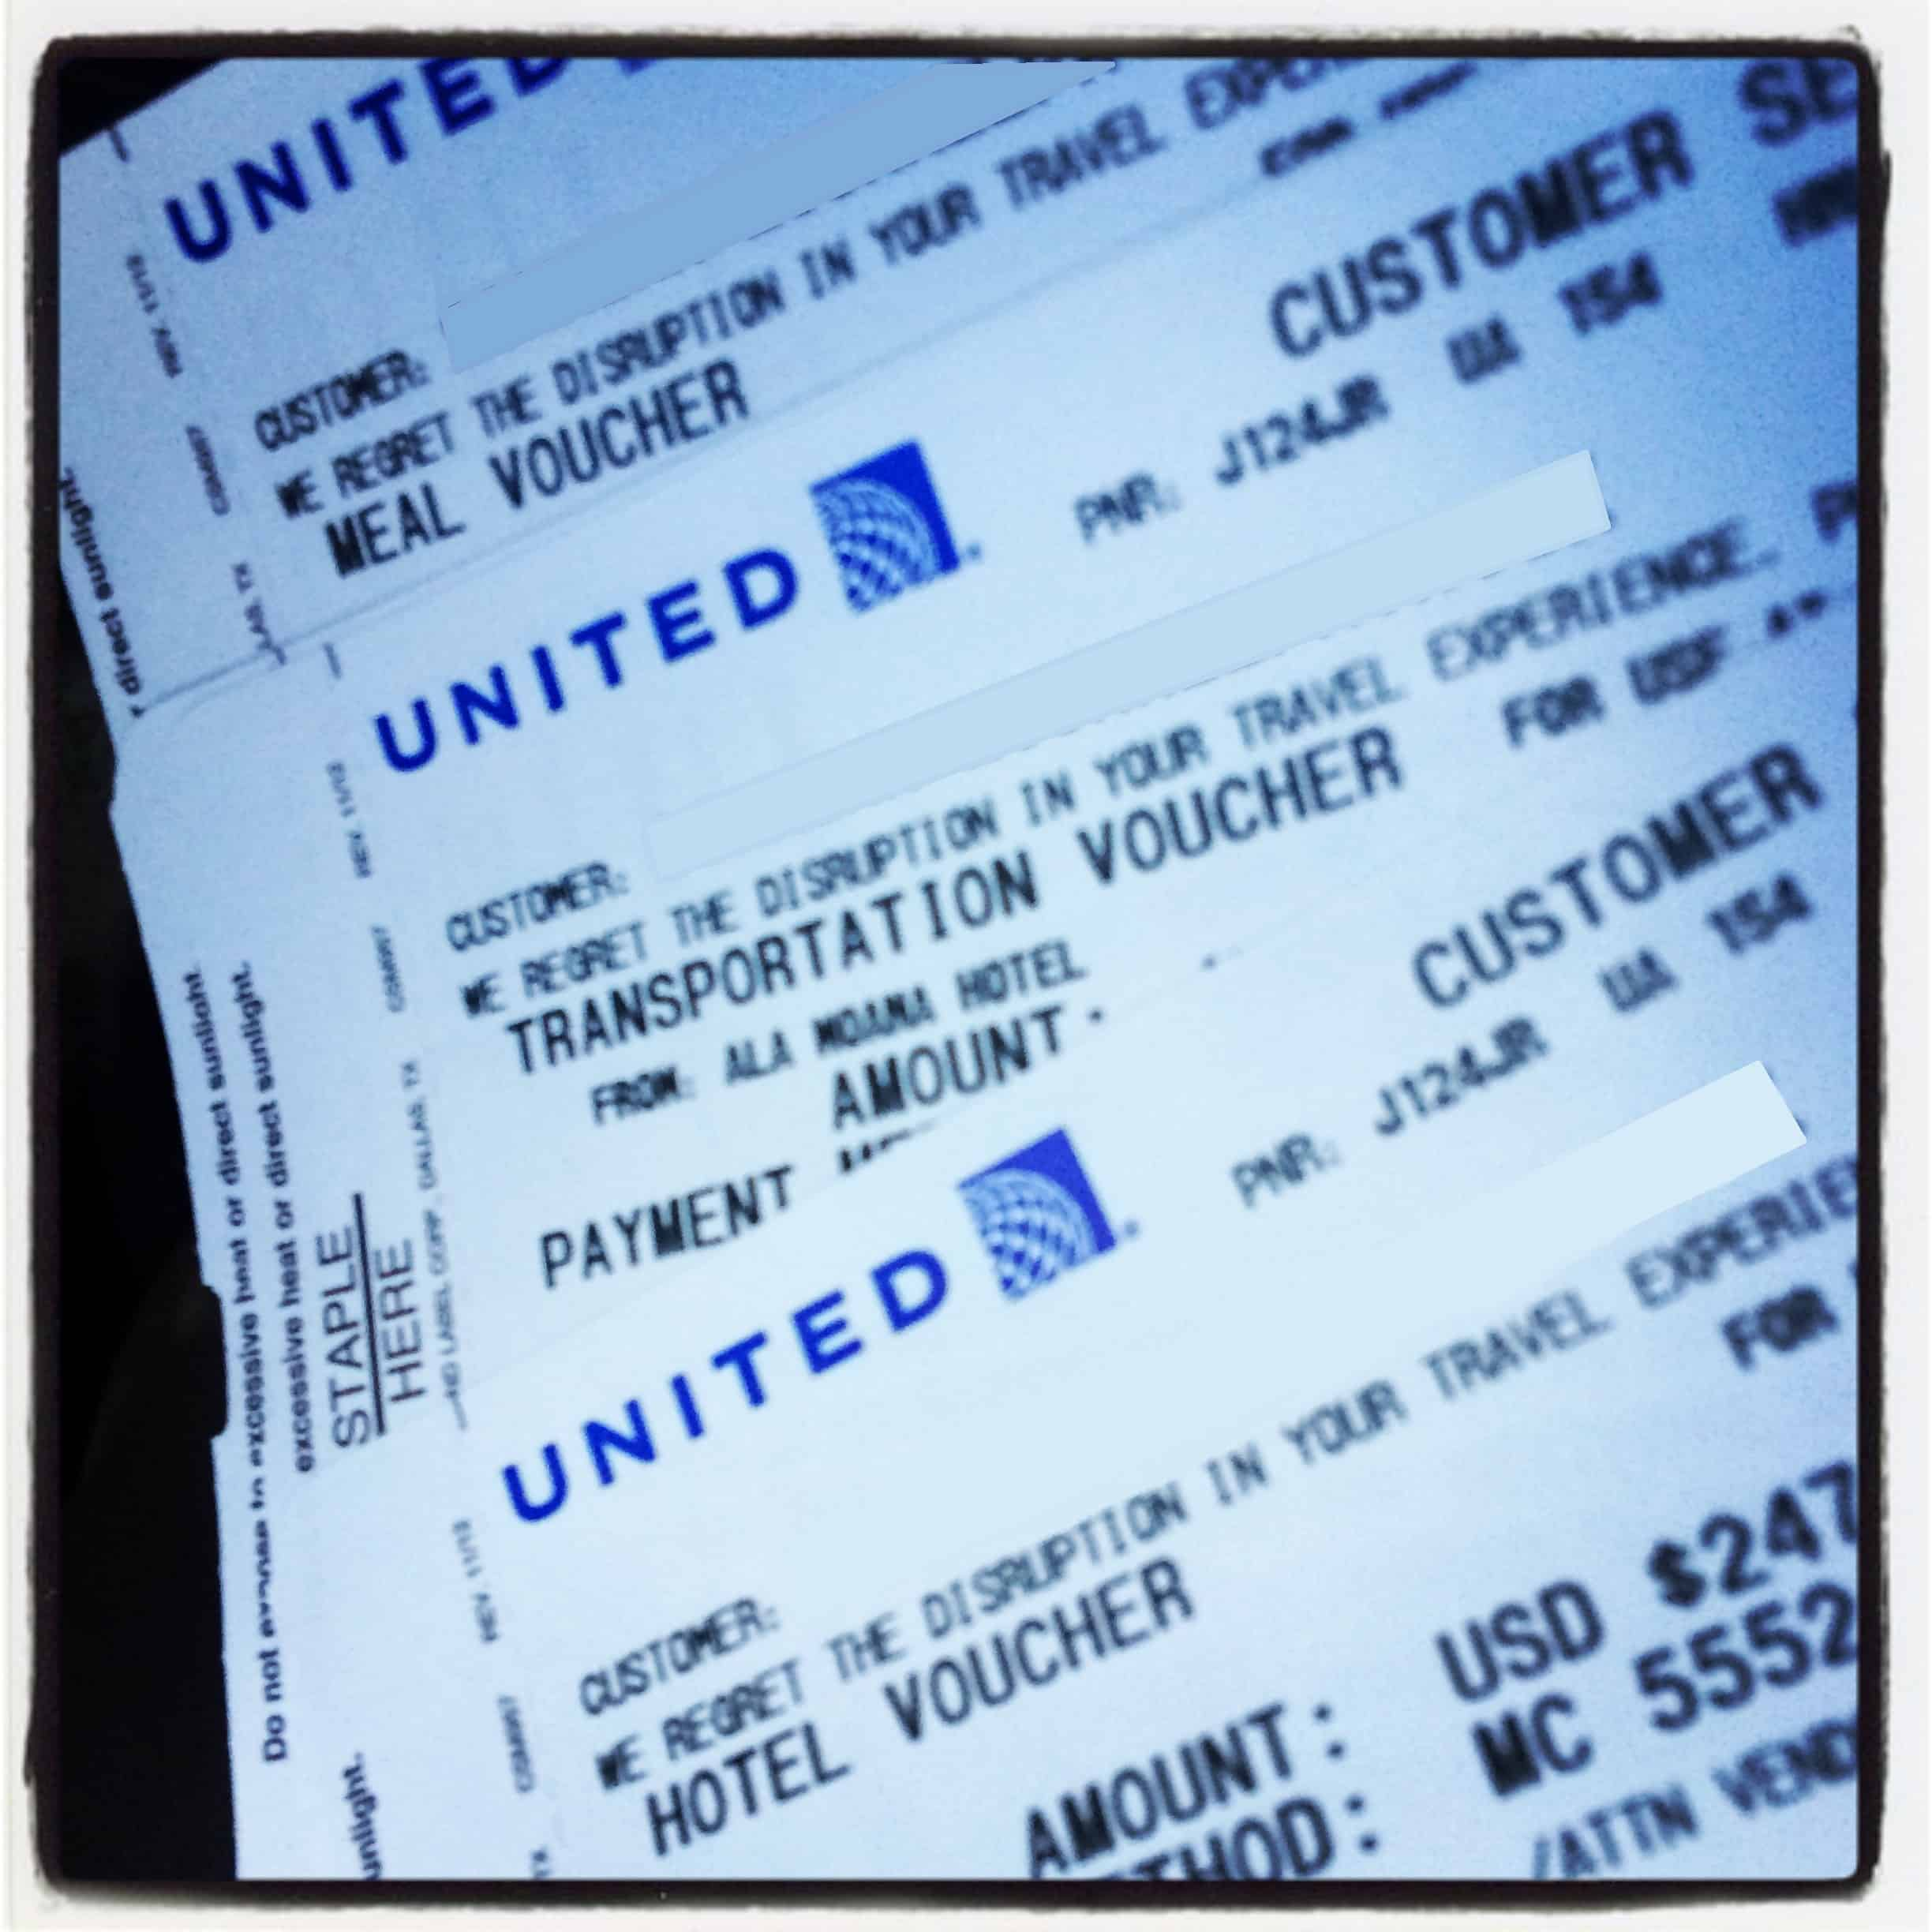 Flight of fantasy united flight 154 the island hopper i get my vouchers from the ticket agent for a free night at a hotel in honolulu two cab rides and three meals lunch dinner and breakfast thecheapjerseys Image collections